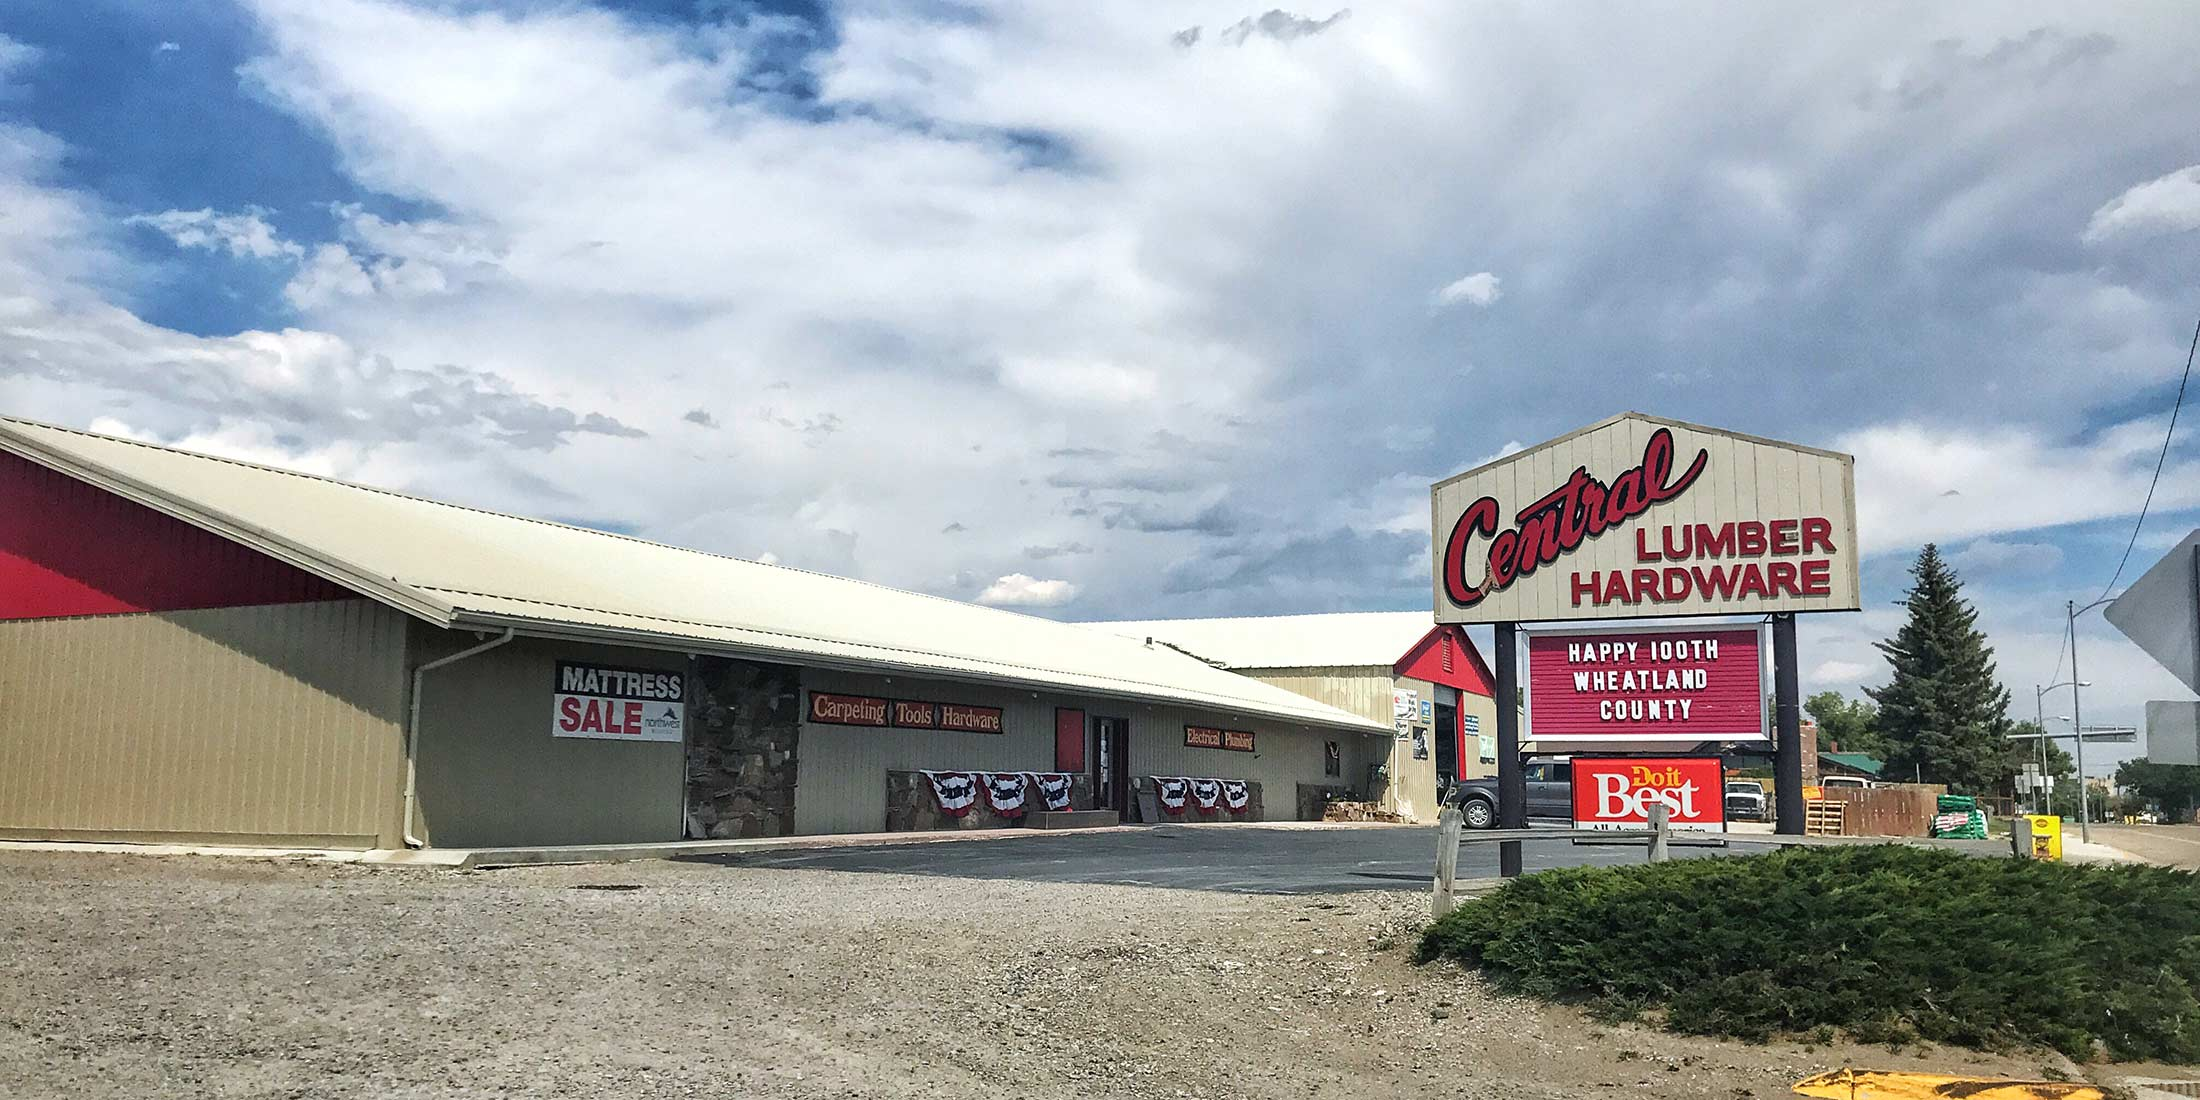 Lumber and hardware store located in Harlowton, Montana on Highway 12 in wheatland County.